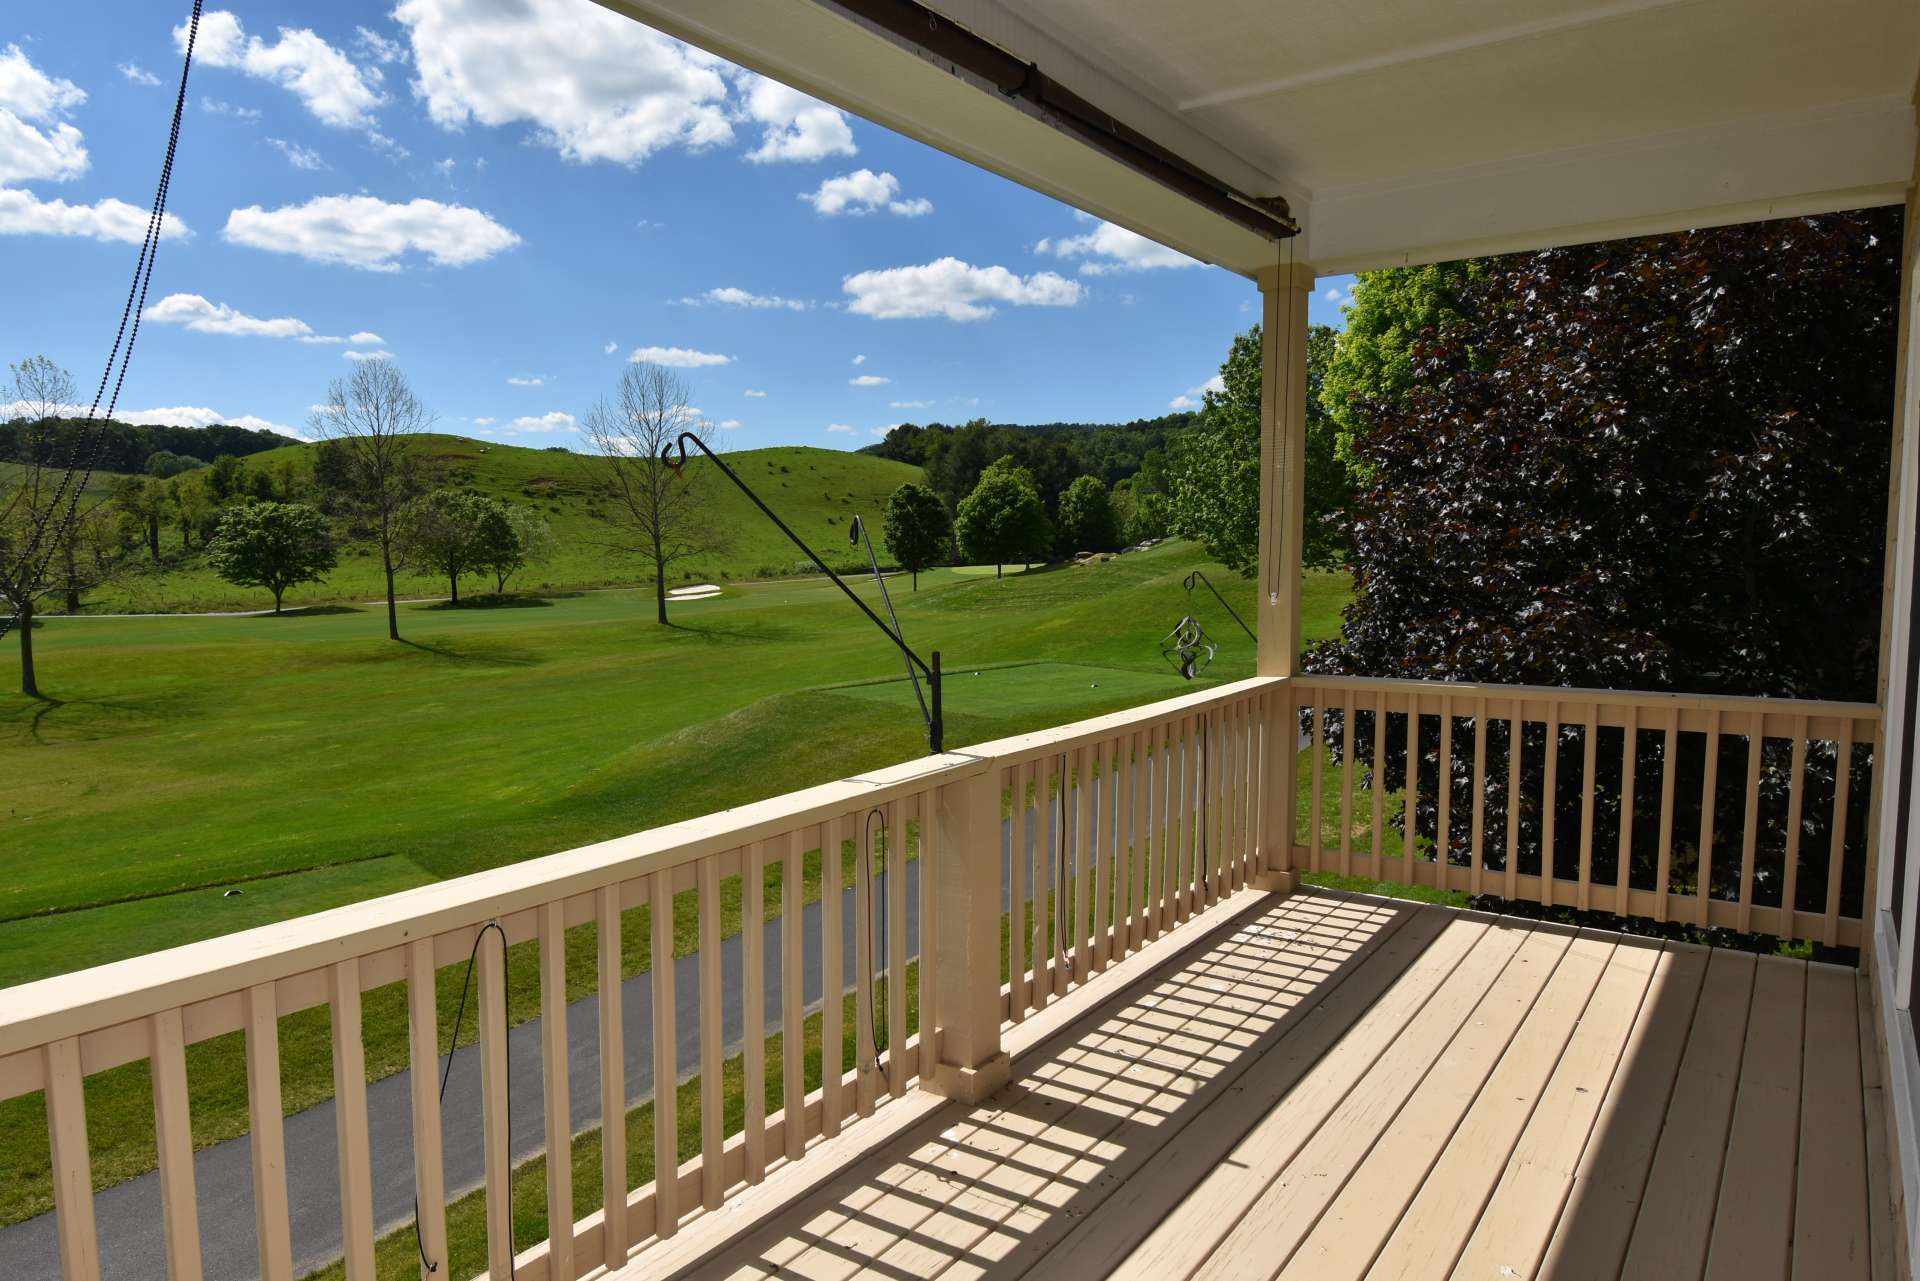 The main level also features a partially covered deck for outdoor entertaining with the fairway and mountain views.